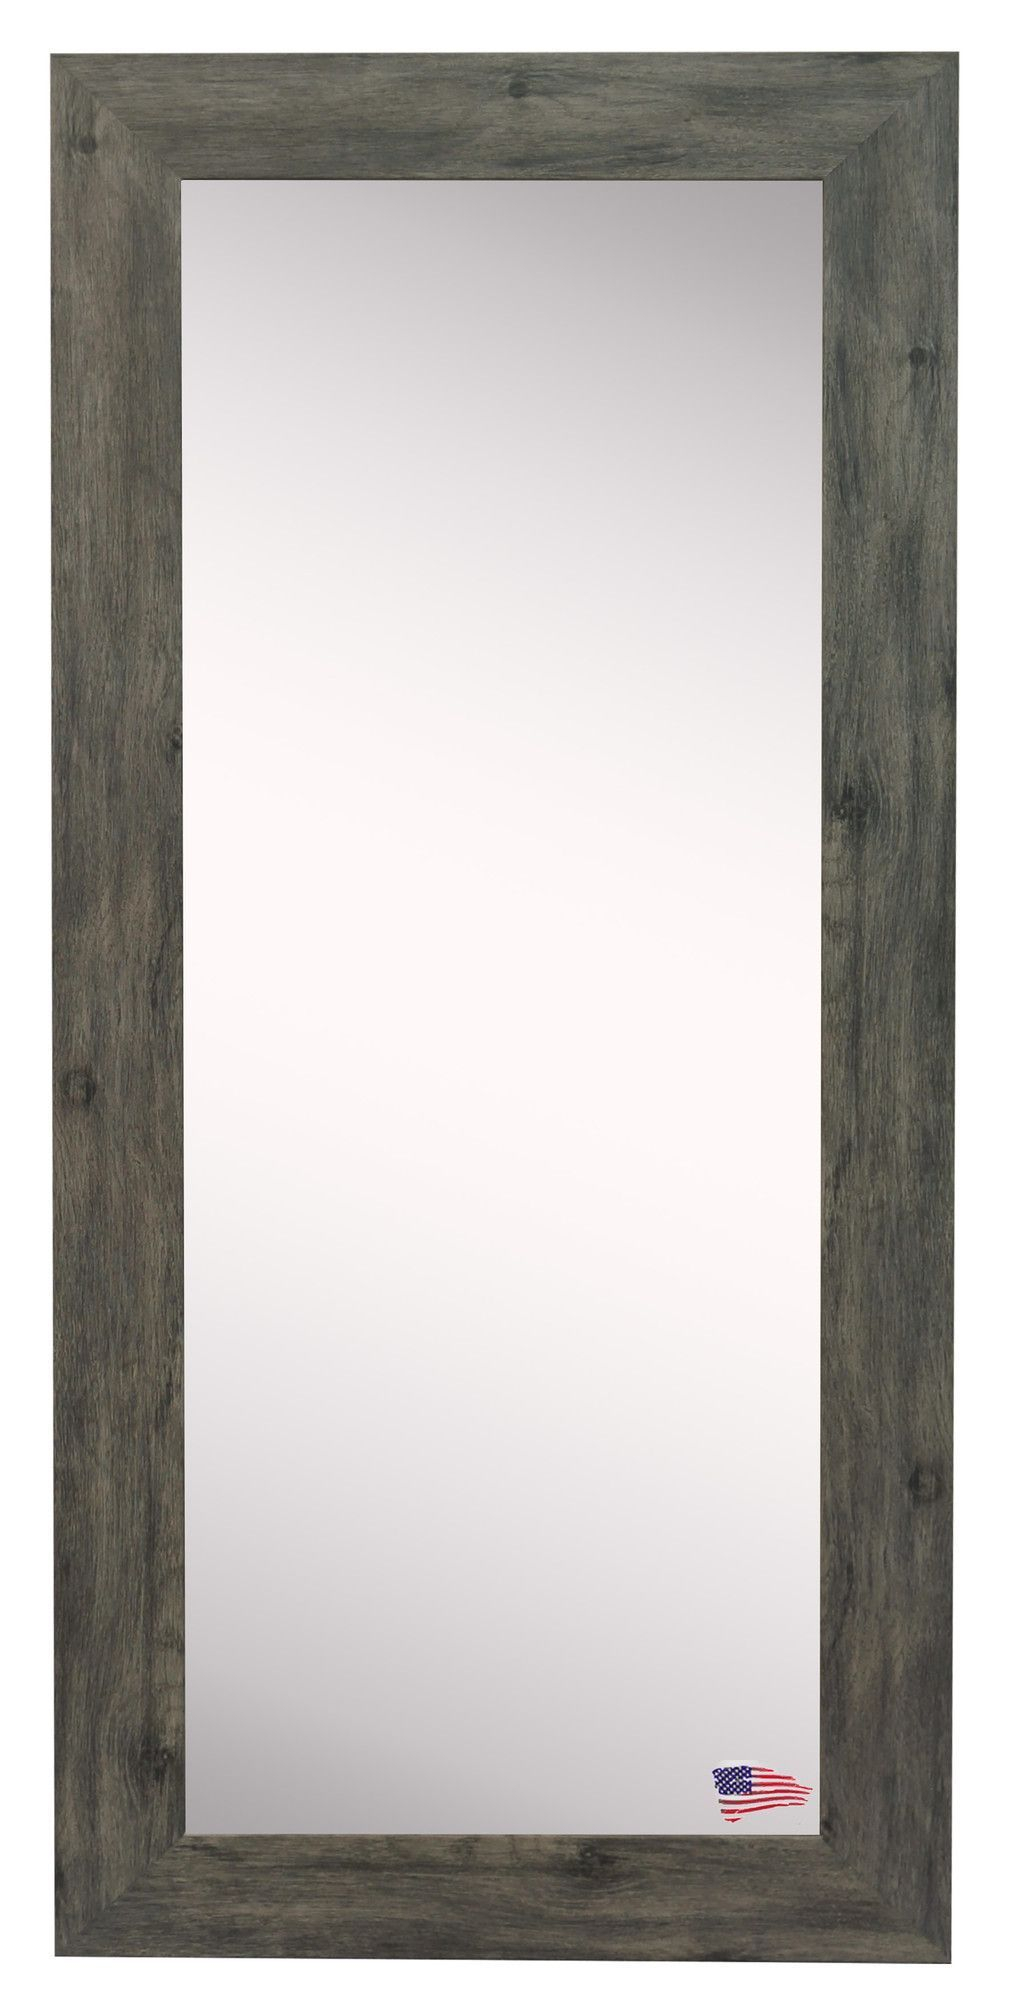 Barnwood Wall Mirror | Vision Board Ideas | Body Mirror With Dalessio Wide Tall Full Length Mirrors (View 6 of 30)